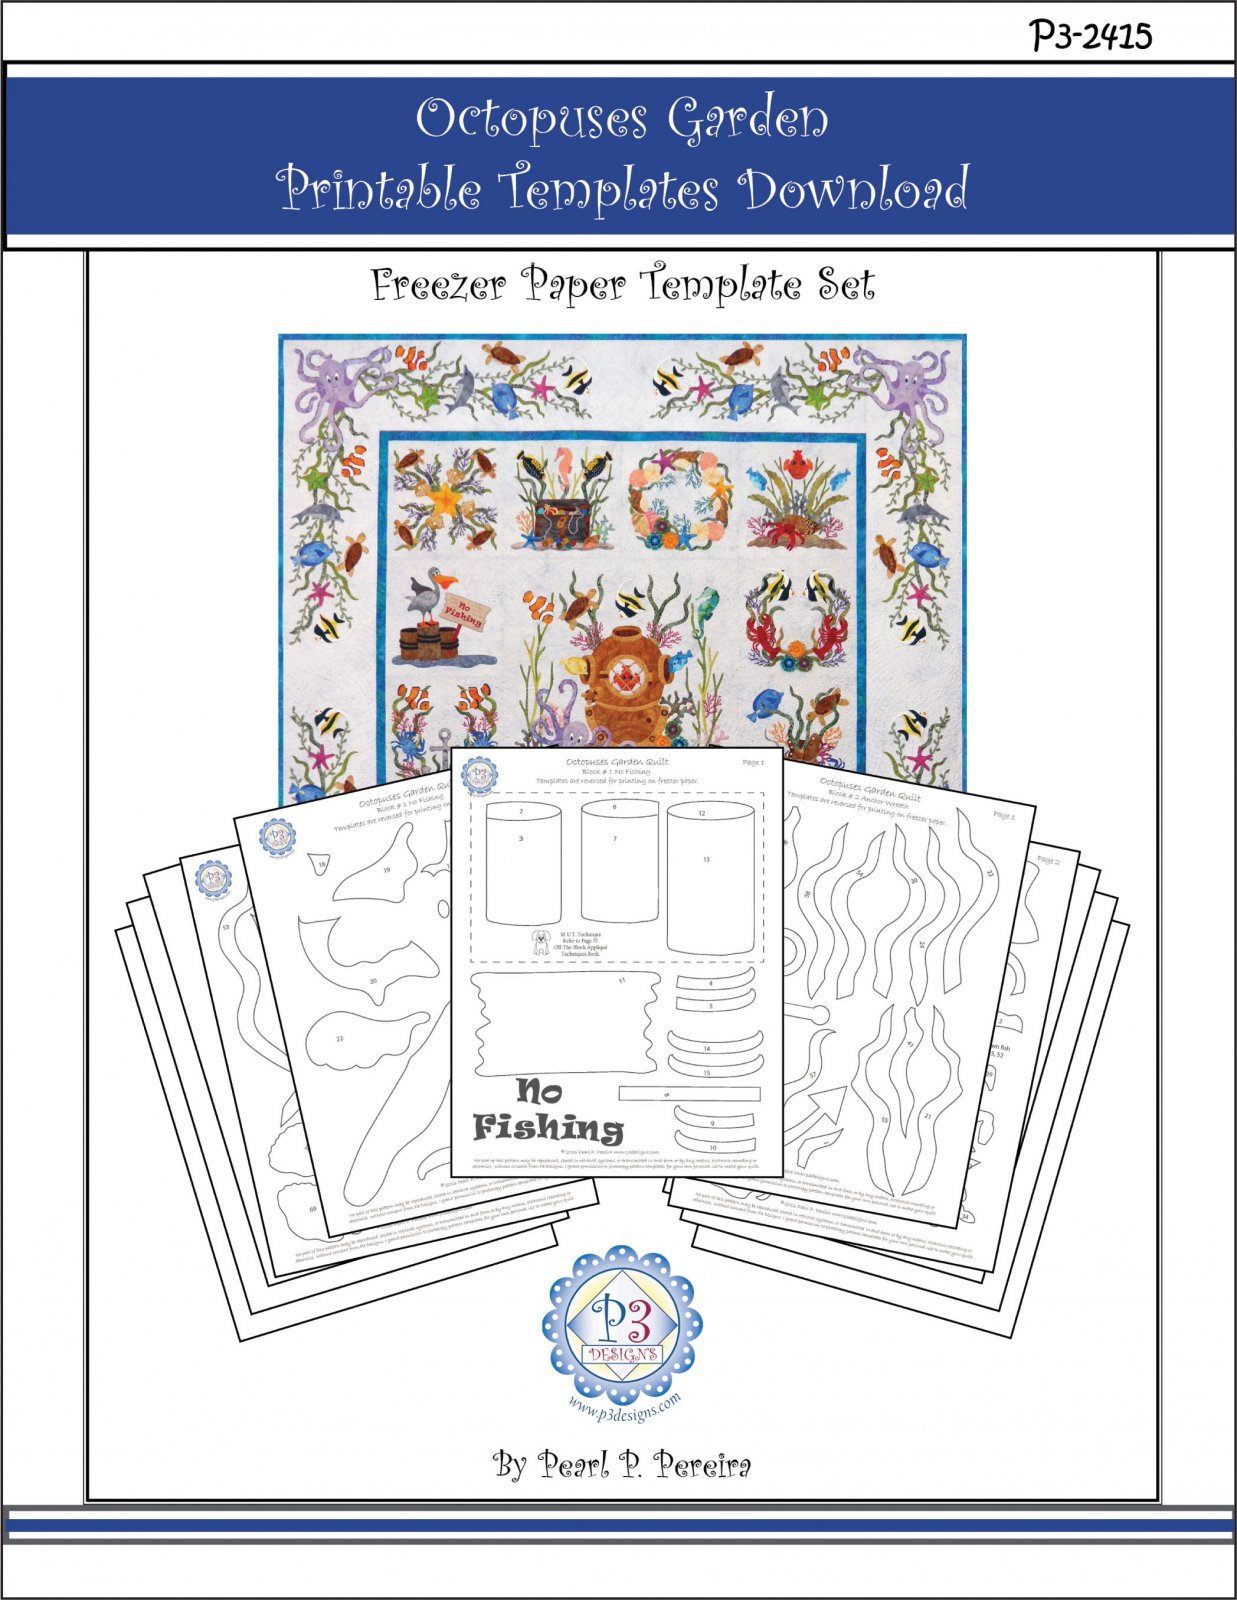 P3-2415 Octopuses Garden Printable PDF Template  Download Only